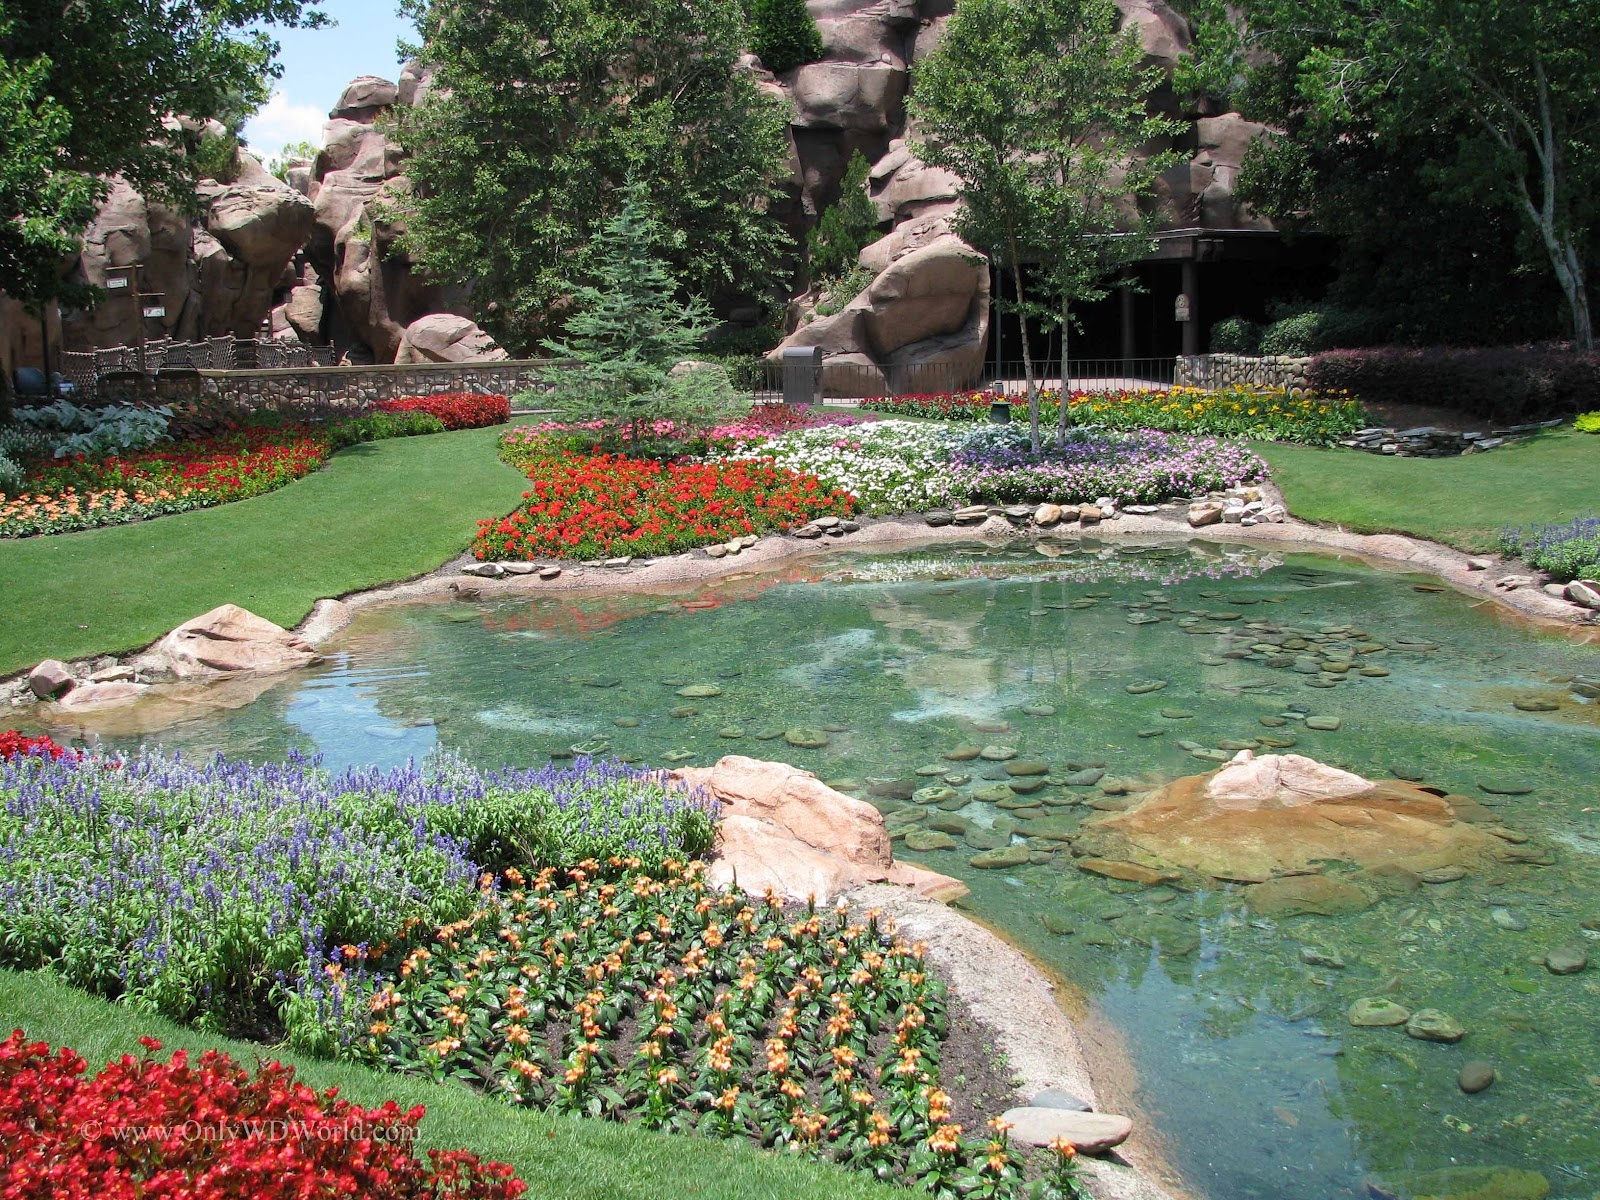 Victoria gardens in disney worlds epcot pay tribute to the butchart the victoria gardens can be found in the canada pavilion between the exit to o canada and the walkway to get to the le cellier steakhouse thecheapjerseys Images